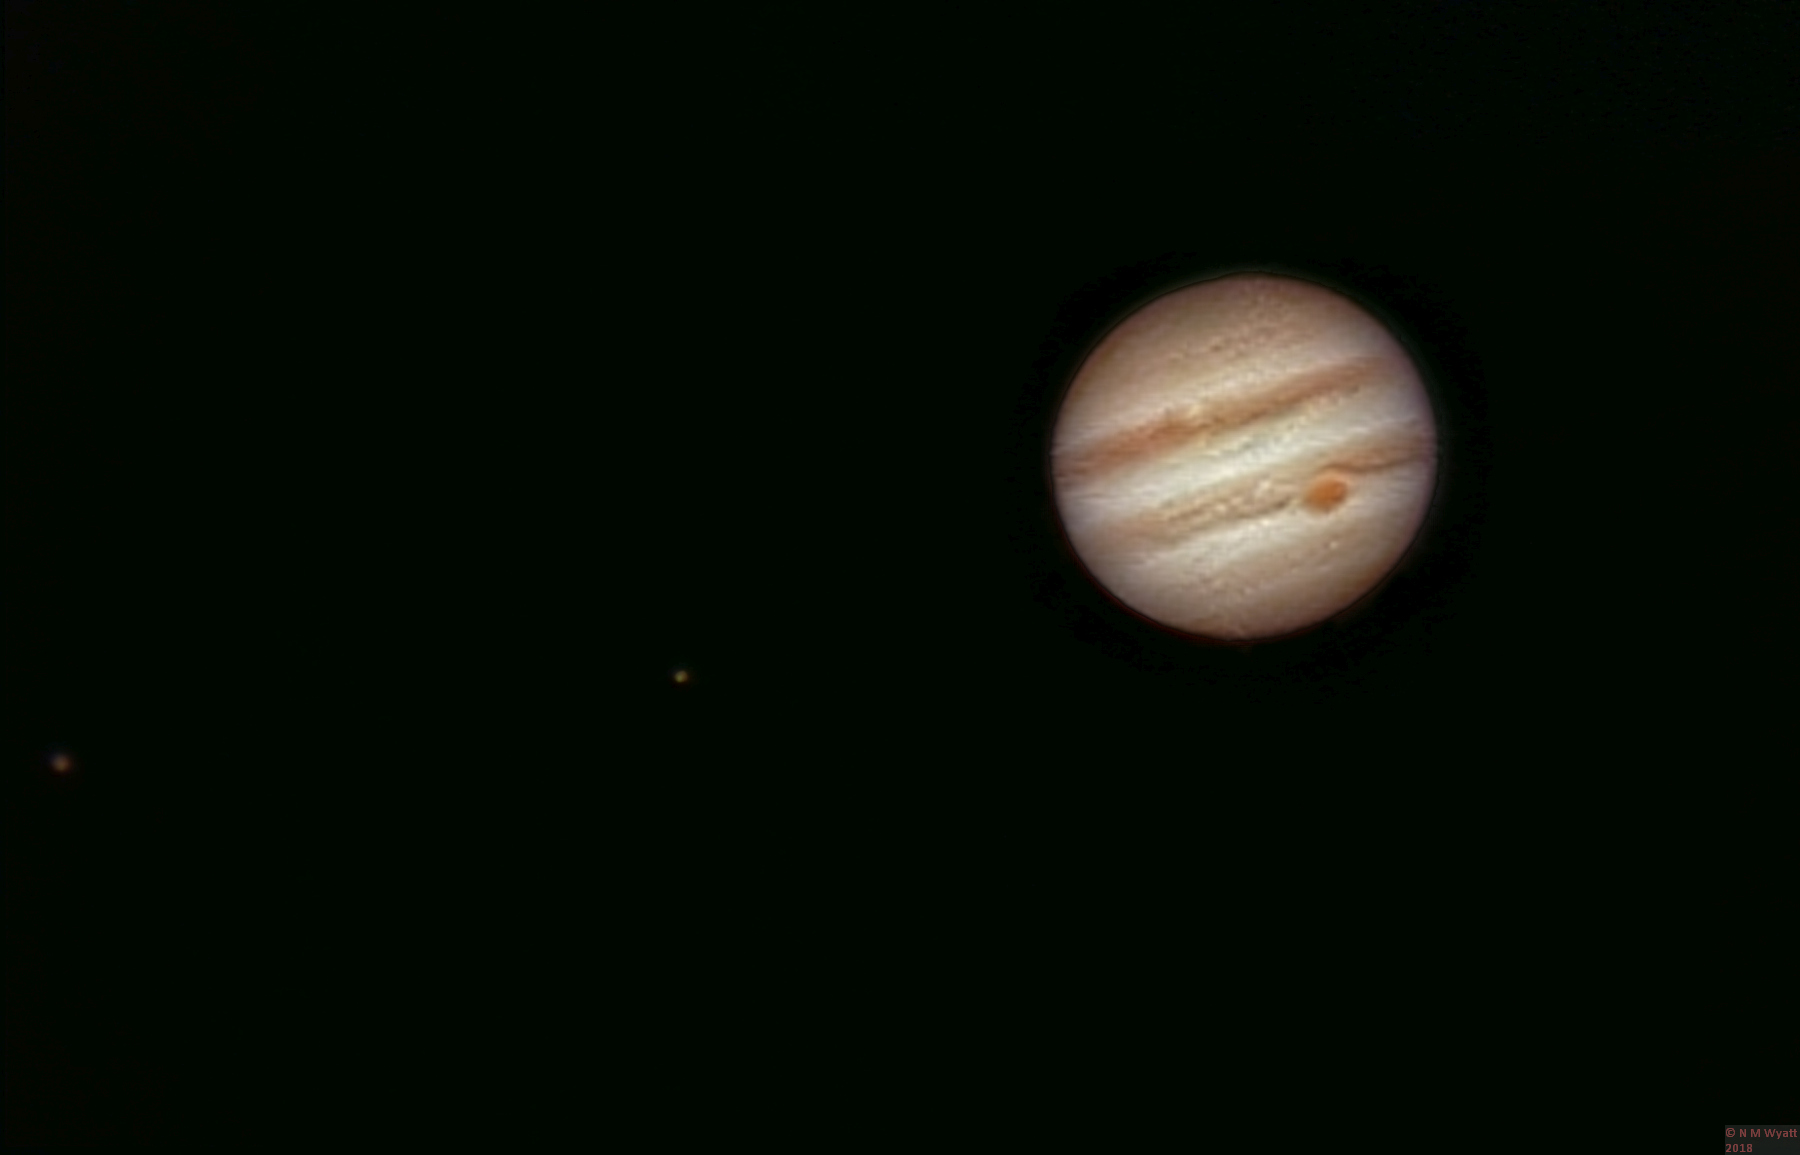 Ganymede, Io and Jupiter with the Great Red Spot